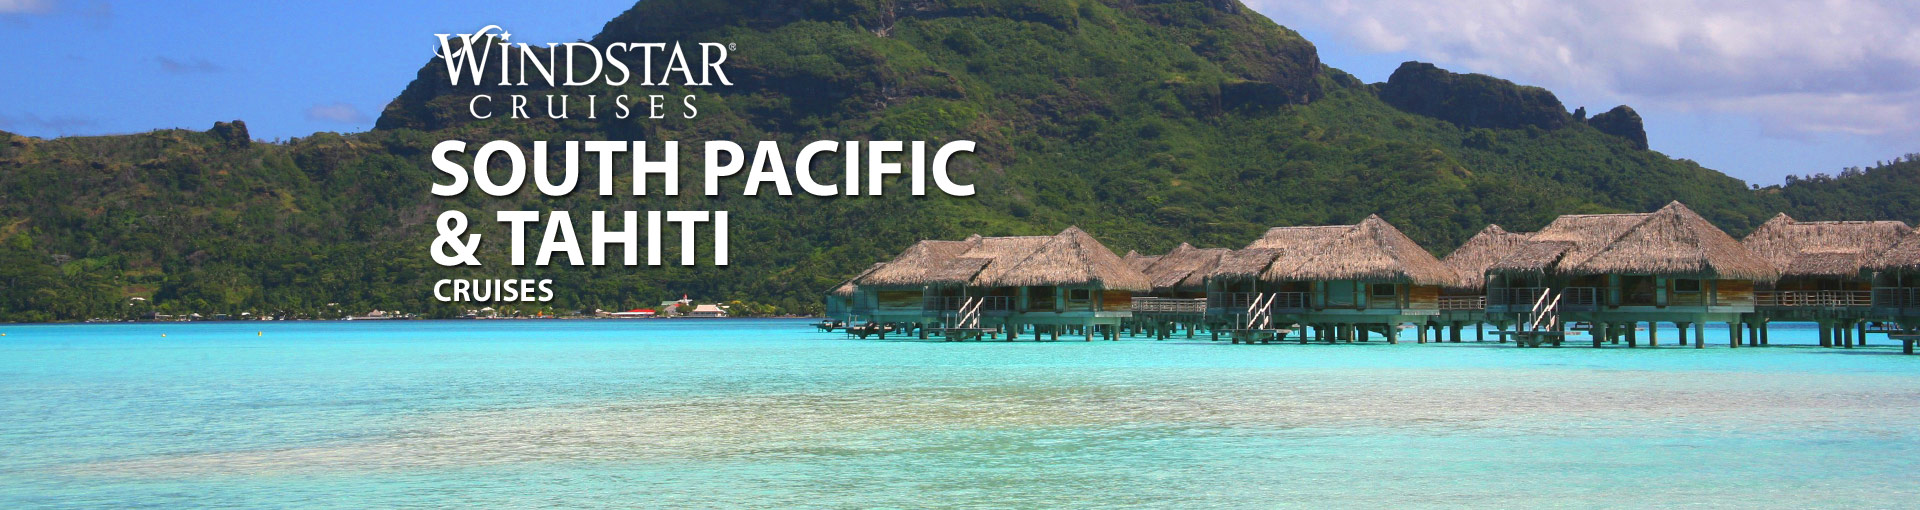 Windstar South Pacific And Tahiti Cruises And South - Cruise to tahiti